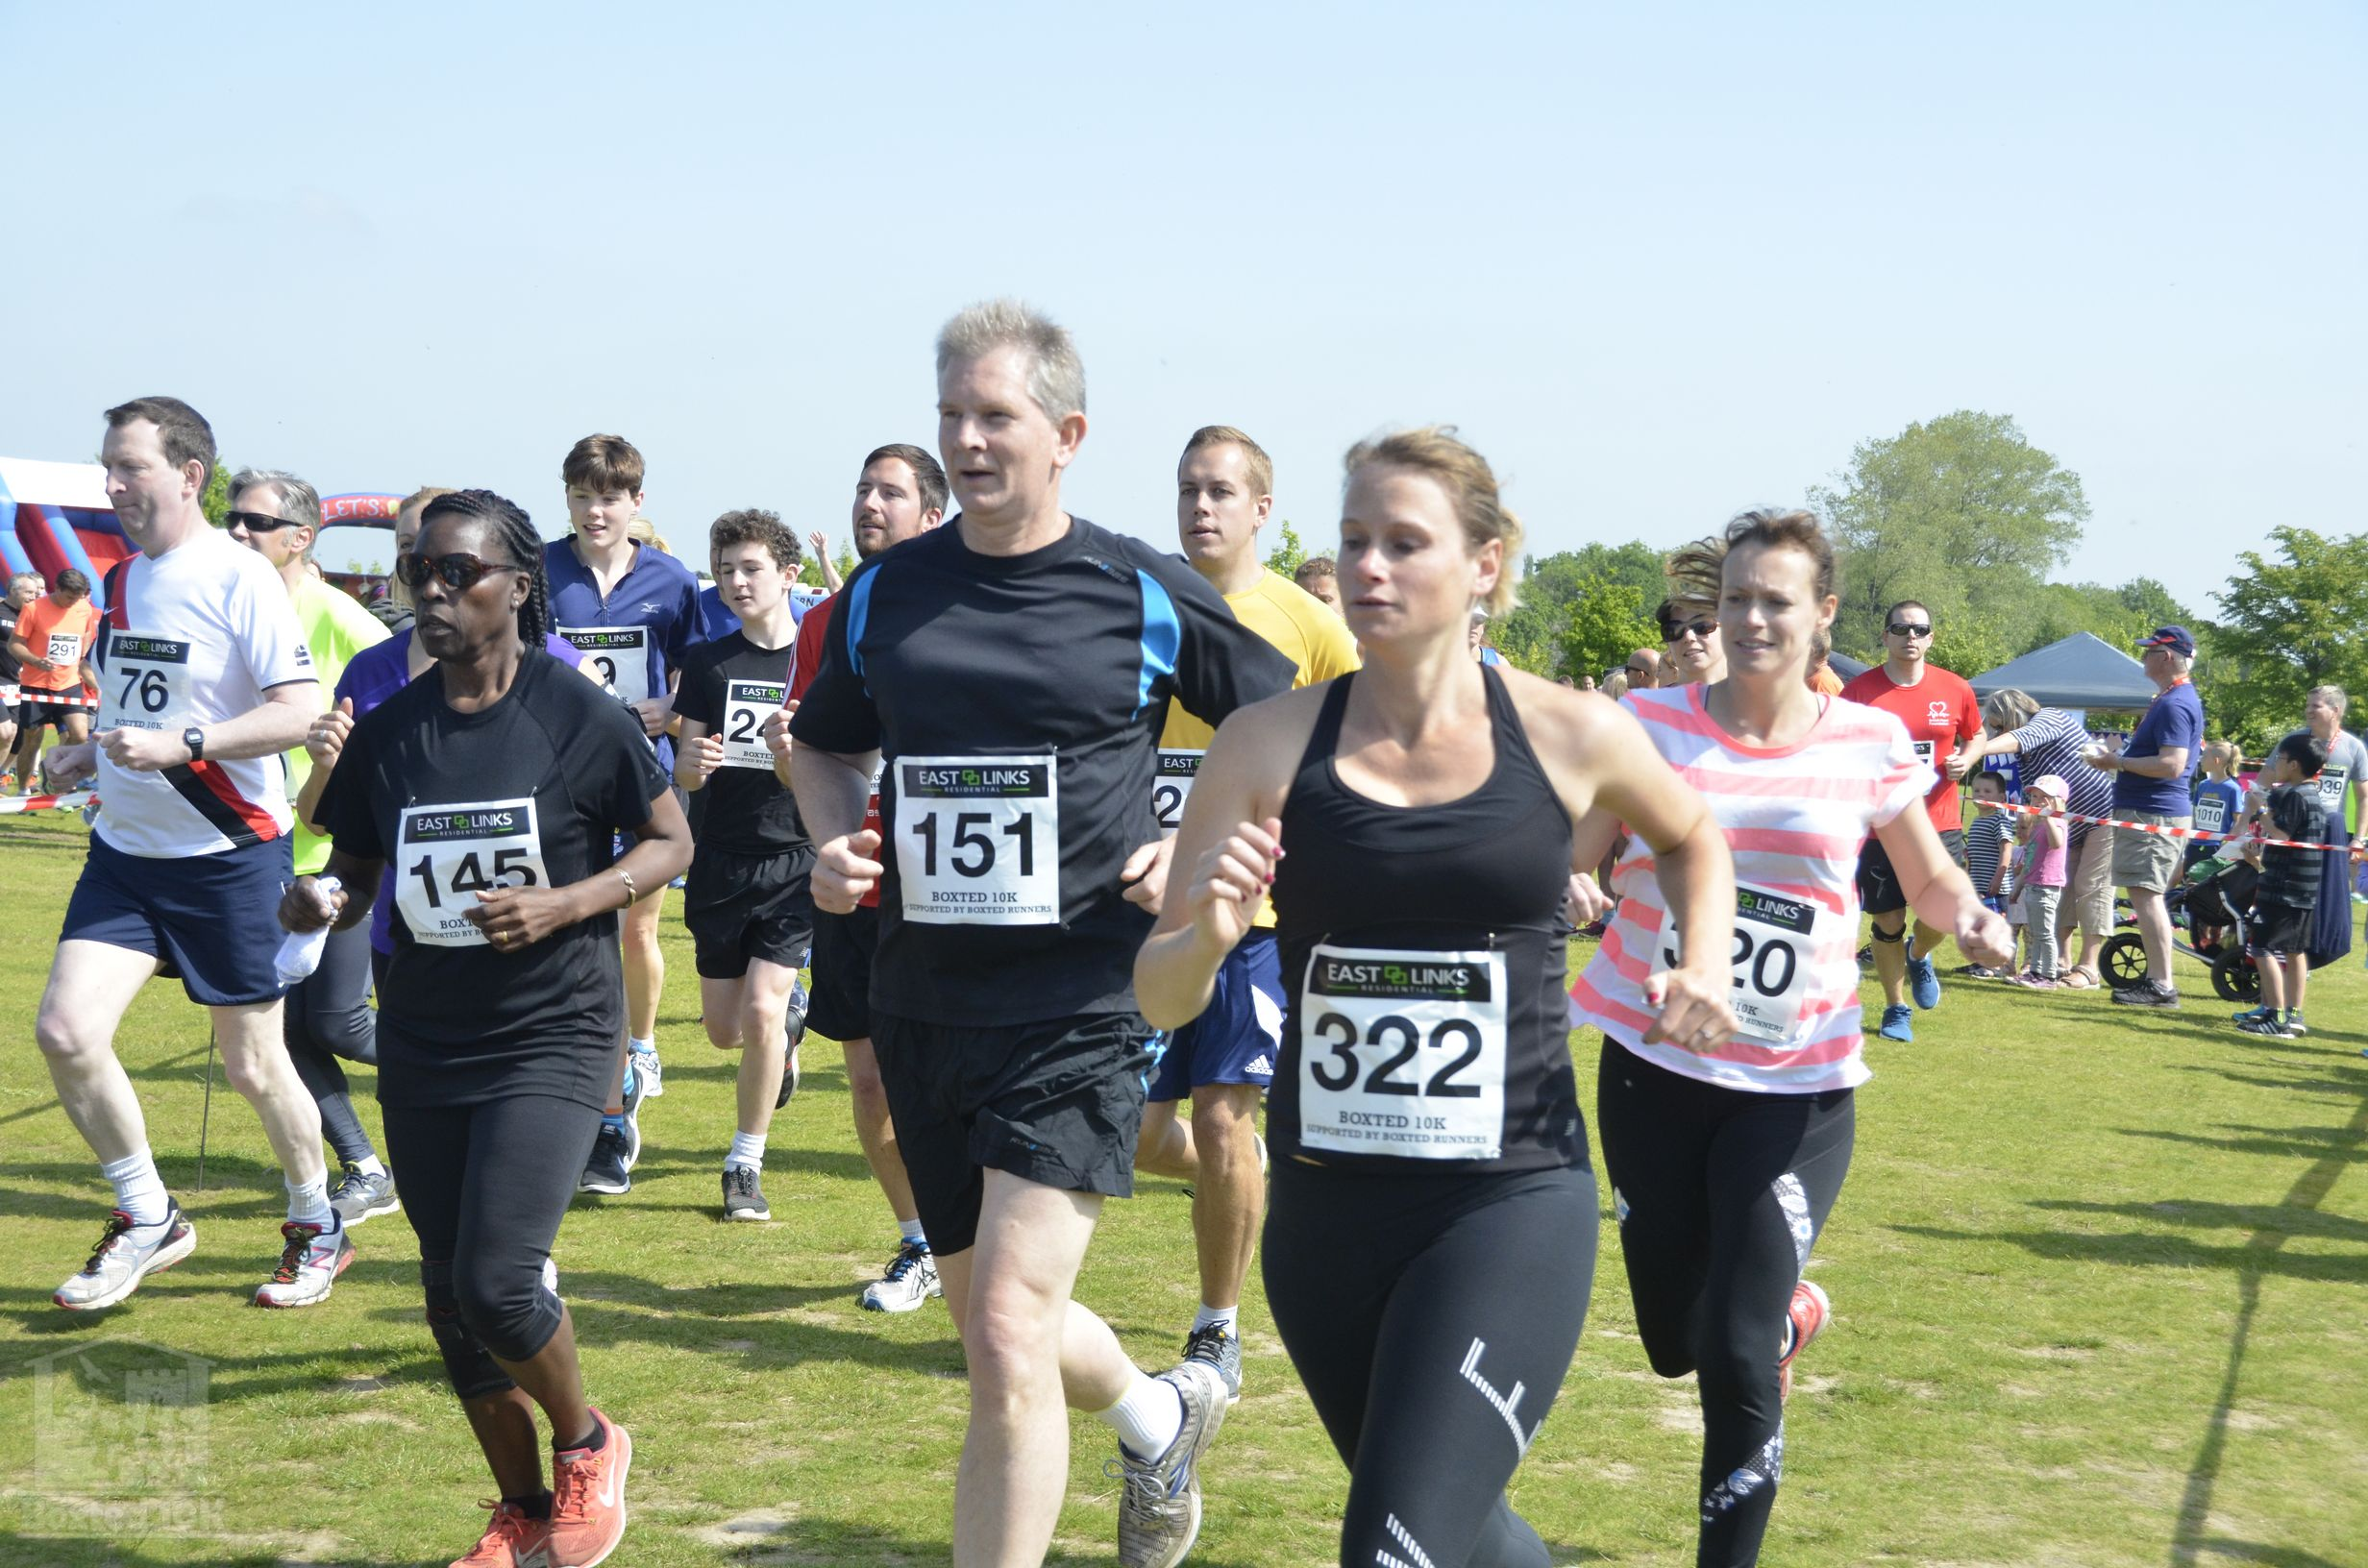 Boxted10k-00072